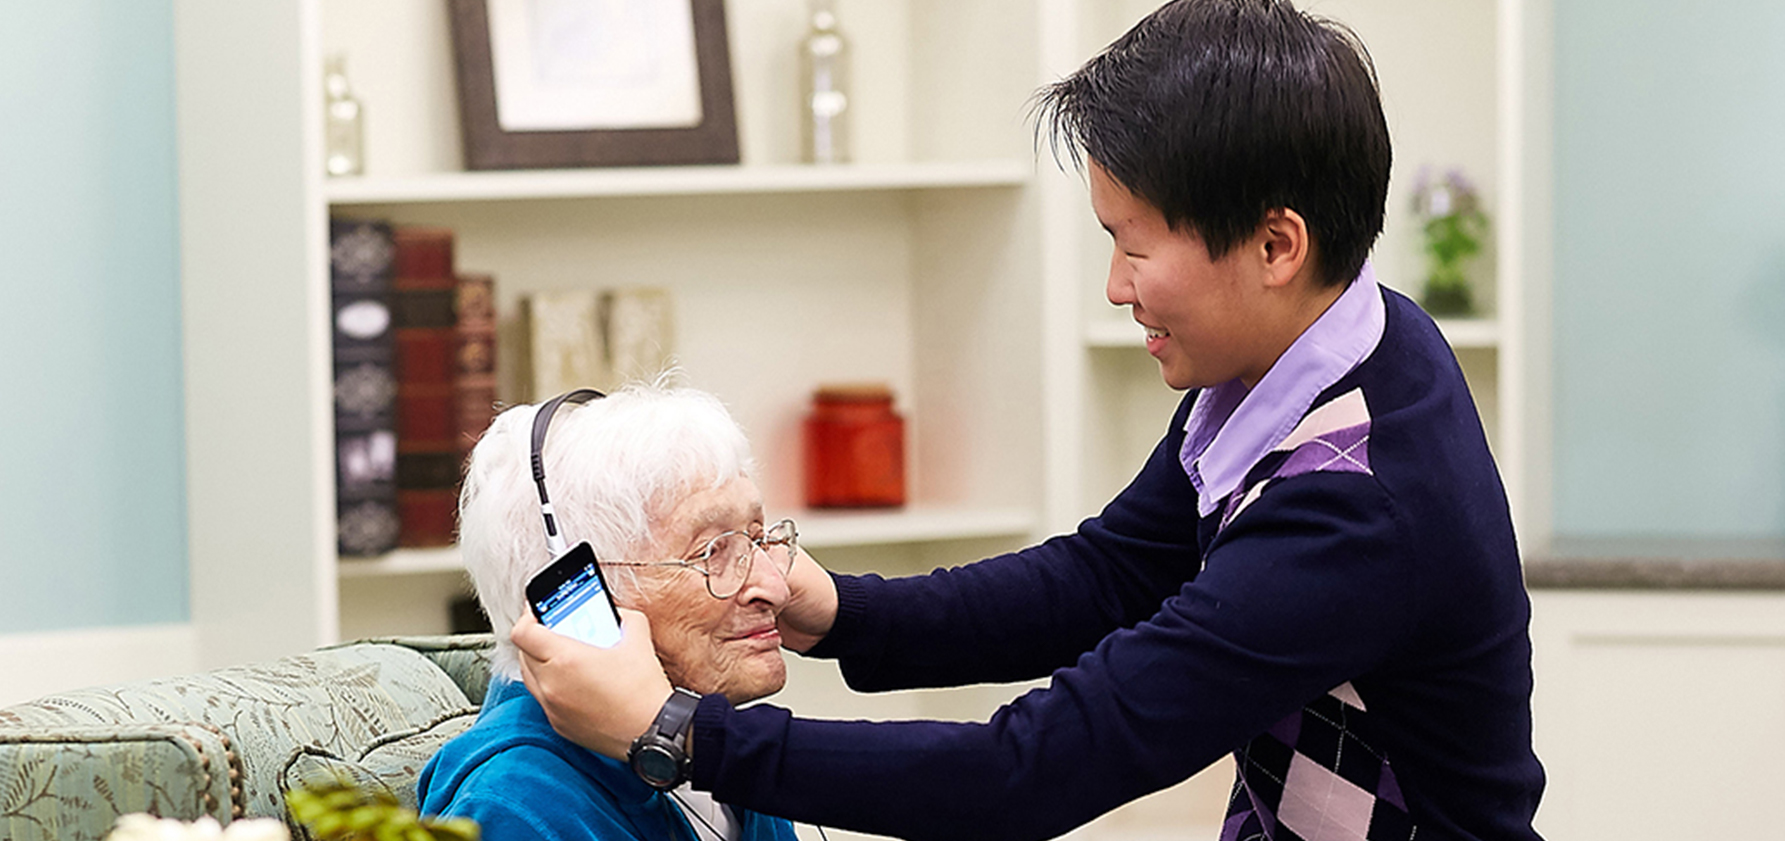 Maggie helps an elderly woman put on headphones